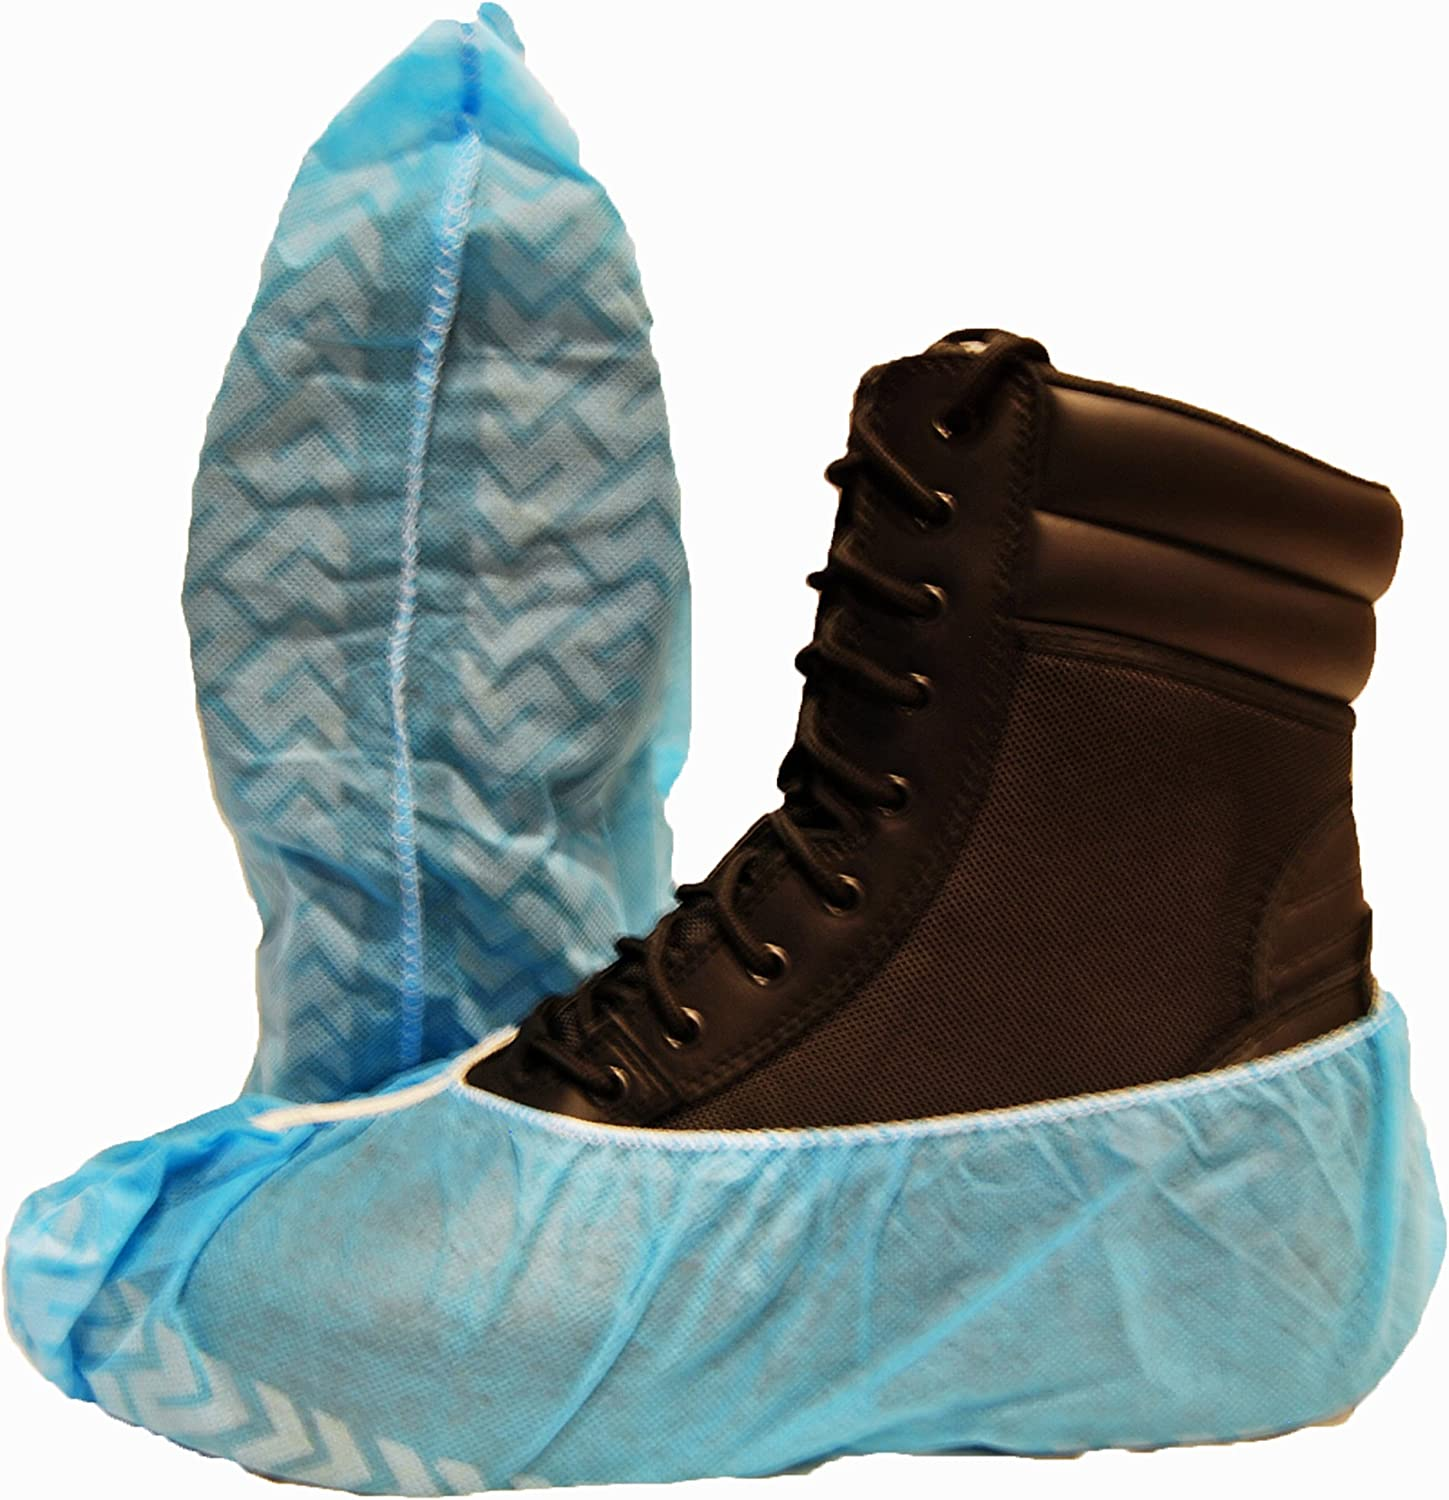 Non Skid Shoe Covers Work Portland Mall Booties High material 100 Pack Size Boot